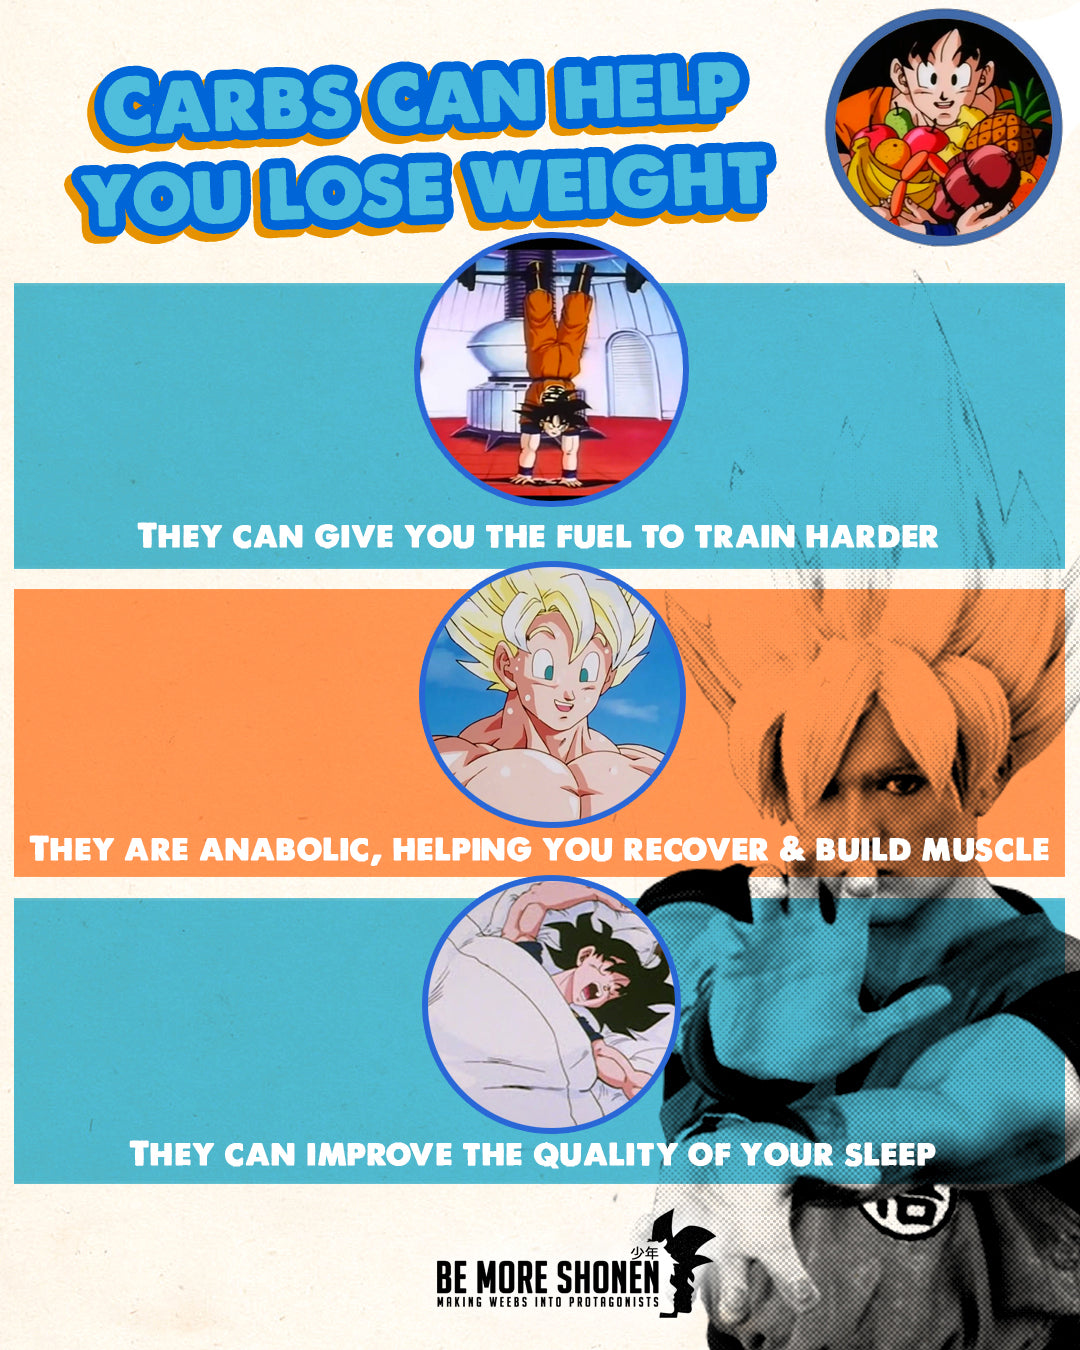 Why carbs are a super power - anime fitness infographic with Goku from DragonBall Z